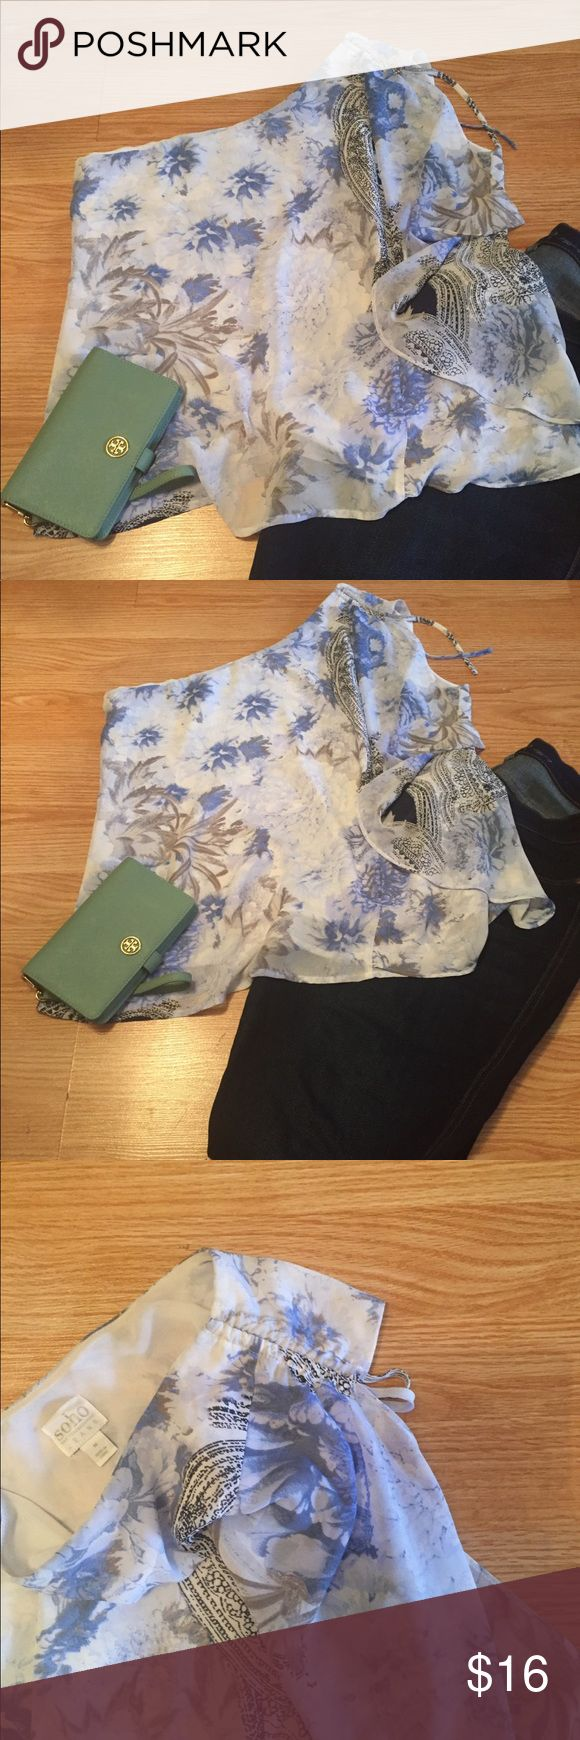 One shoulder top, Soho Jeans Cute and flirty one shoulder top, Excellent Used Condition New York & Company Tops